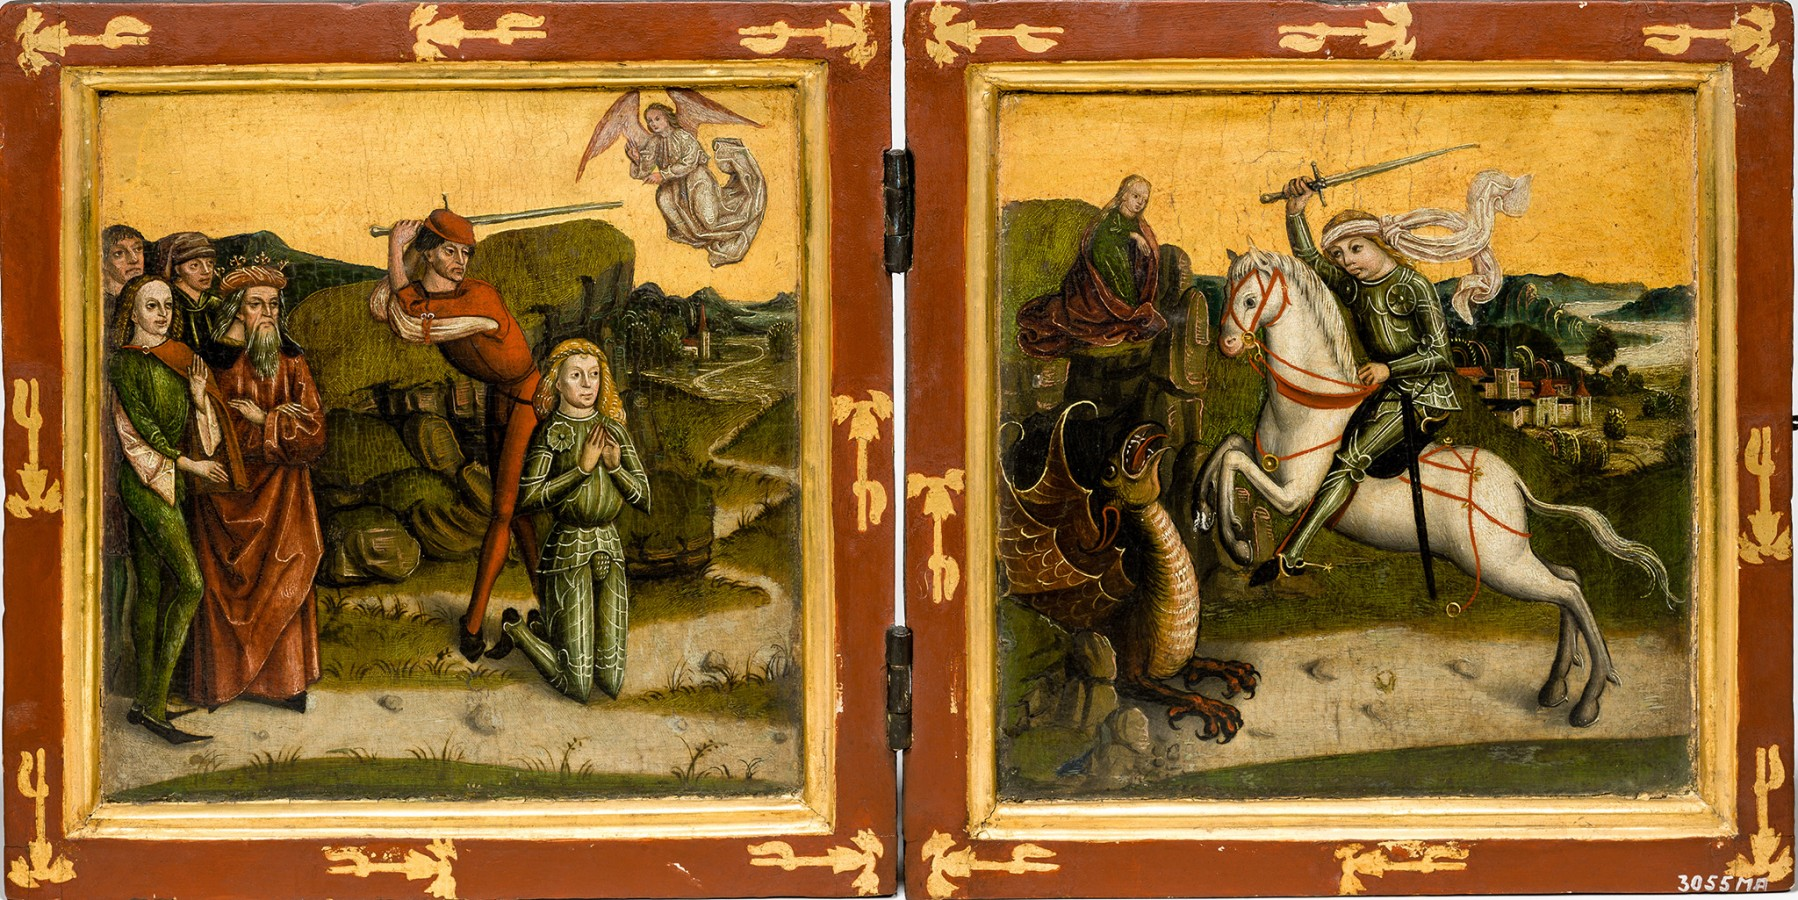 Saint George and the dragon, cr. 1470, southern Germany